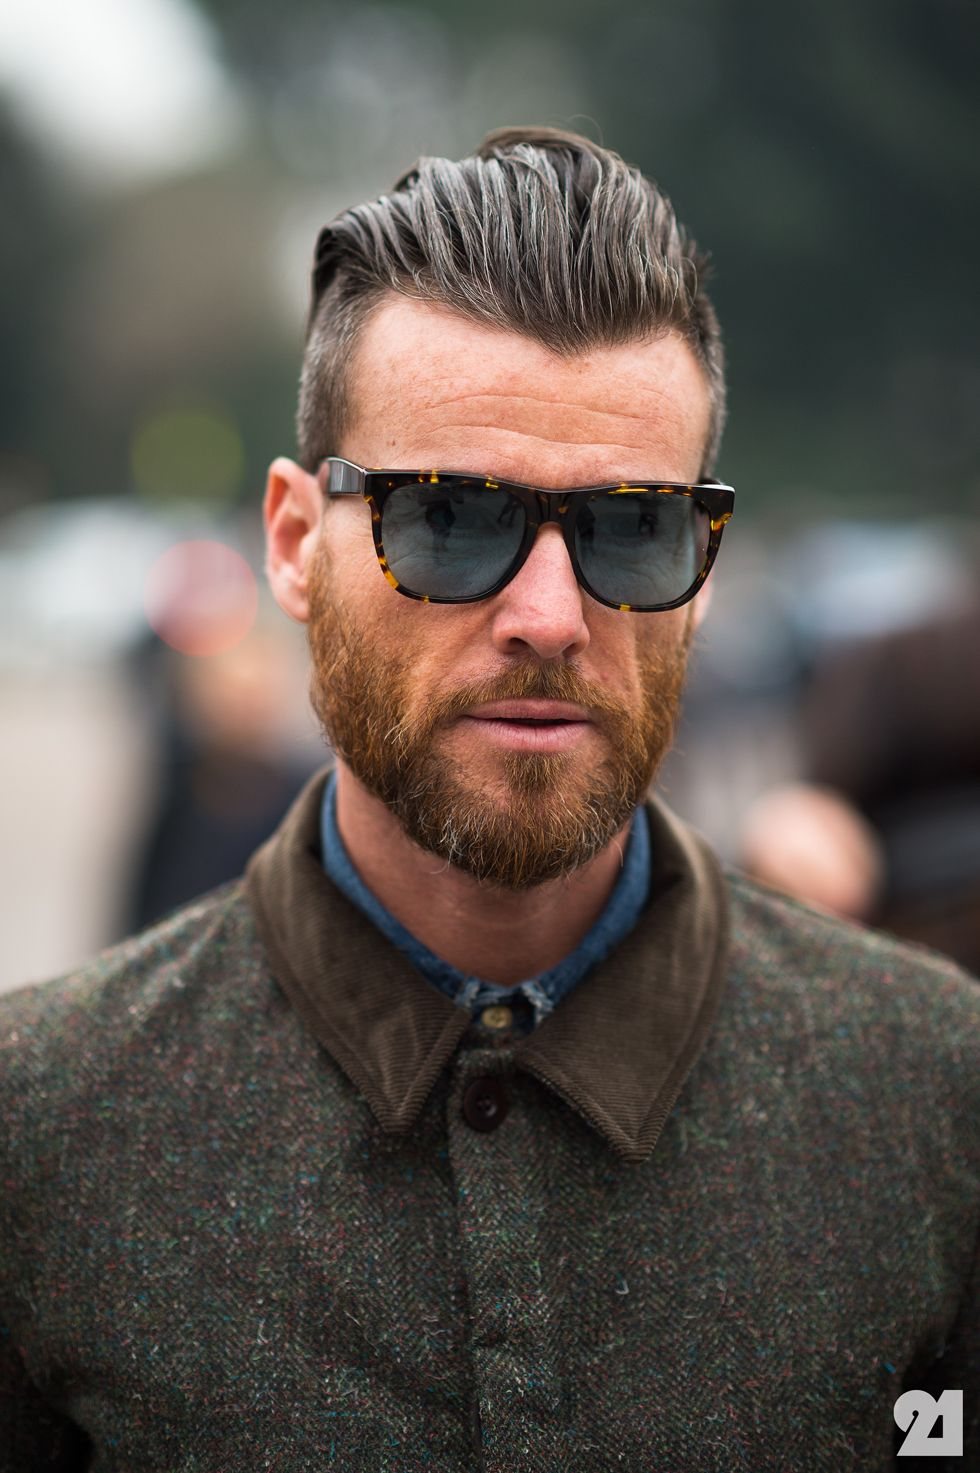 Pin By Gusan Paul On Live Long And Prosper Hipster Hairstyles Hipster Mens Fashion Beard Styles